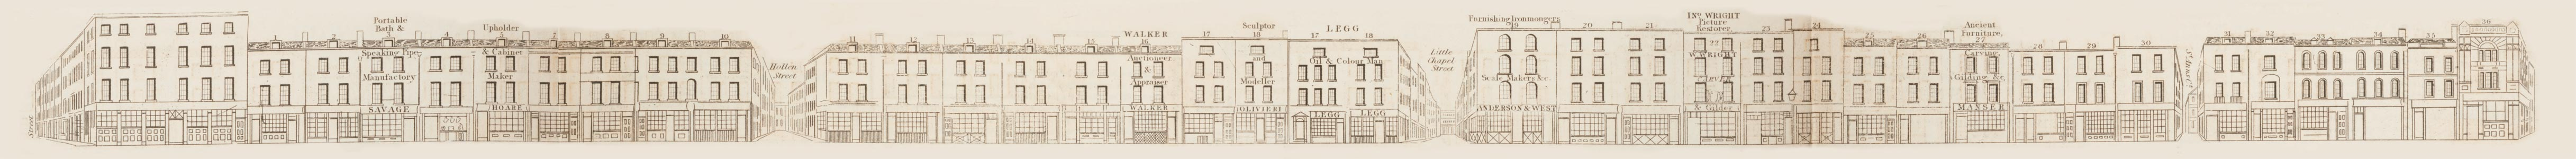 map - Tallis's London street views : No. 62. Wardour Street, division 1 (east)